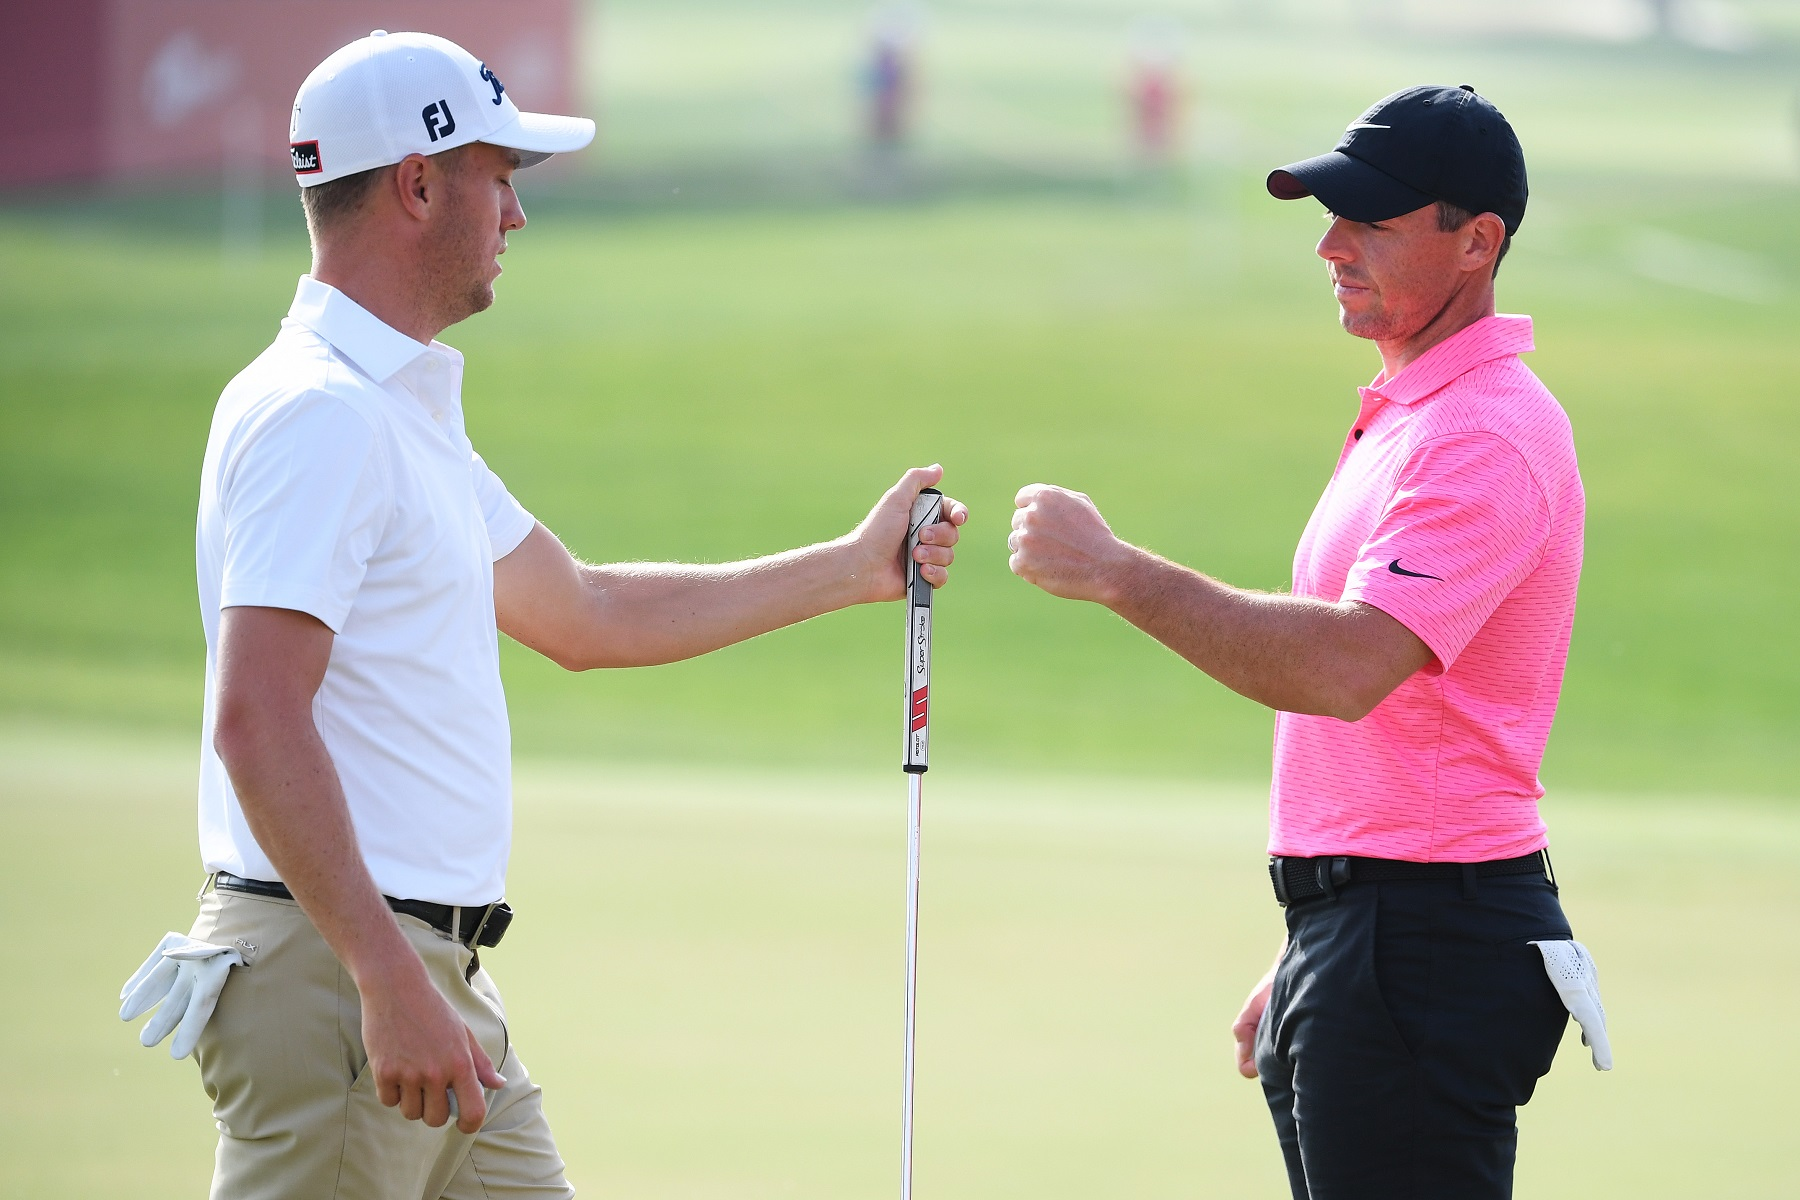 Justin Thomas Is Still 'a Great Guy' Despite the Homophobic Slur, PGA Rival Rory McIlroy Insists